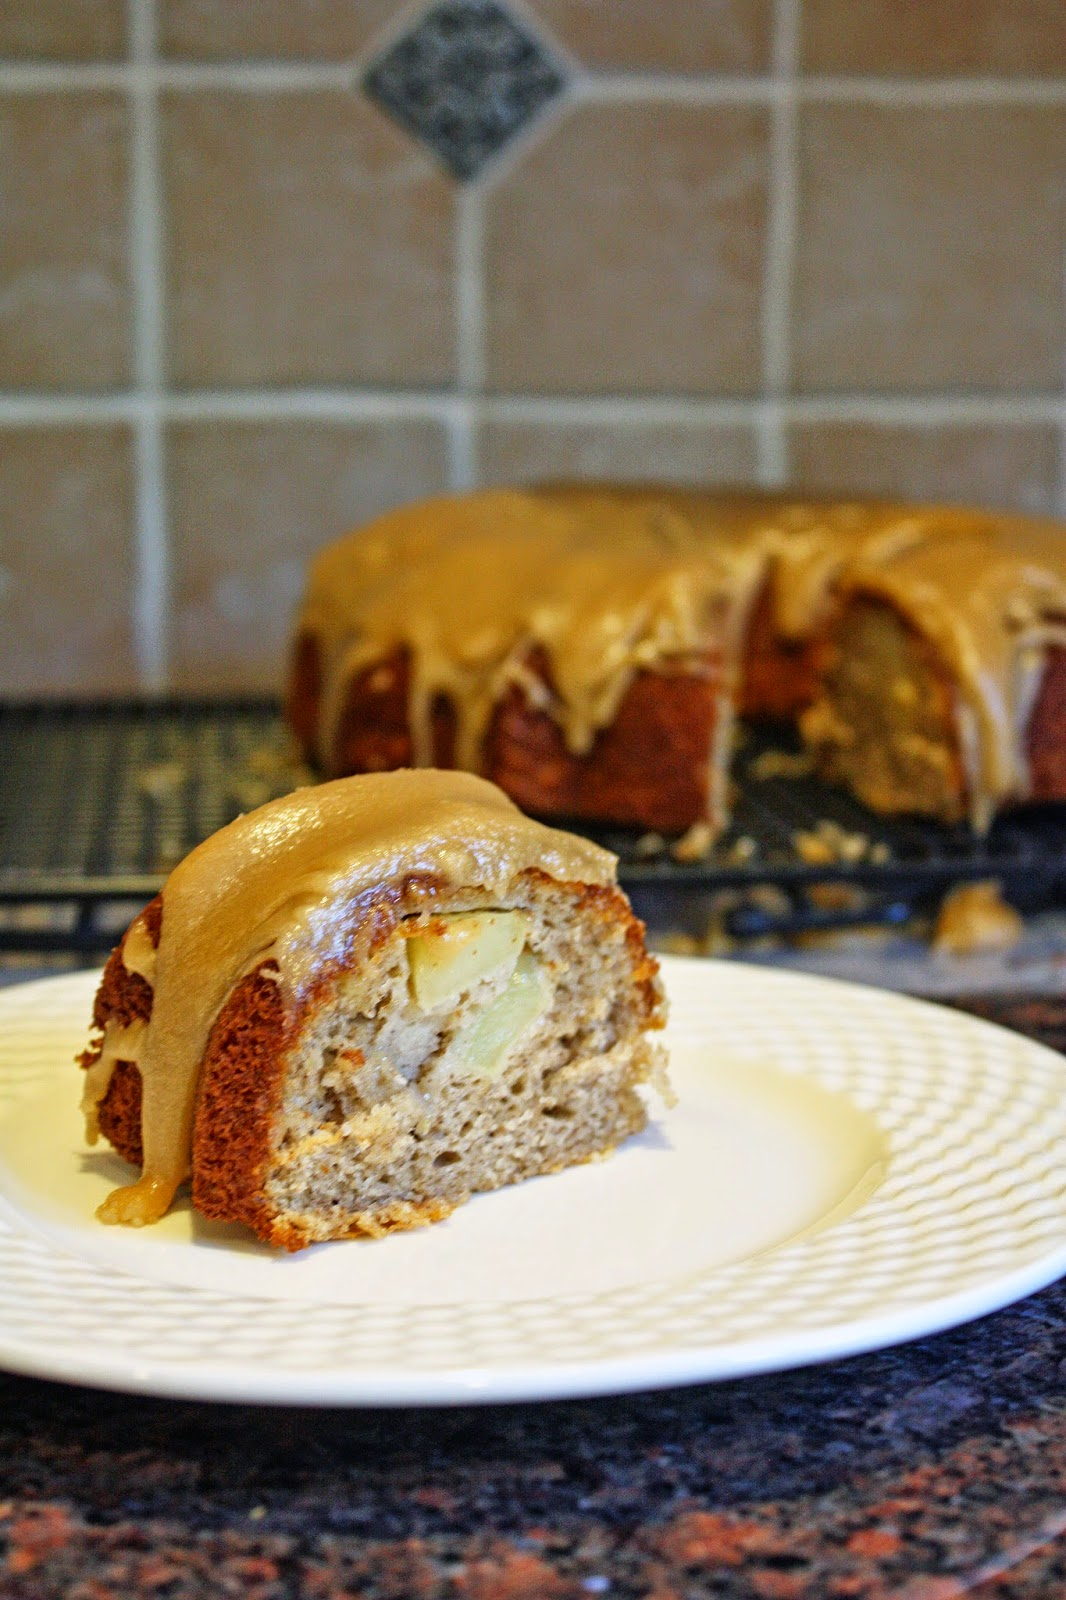 Vegan apple Bundt cake with brown sugar glaze.